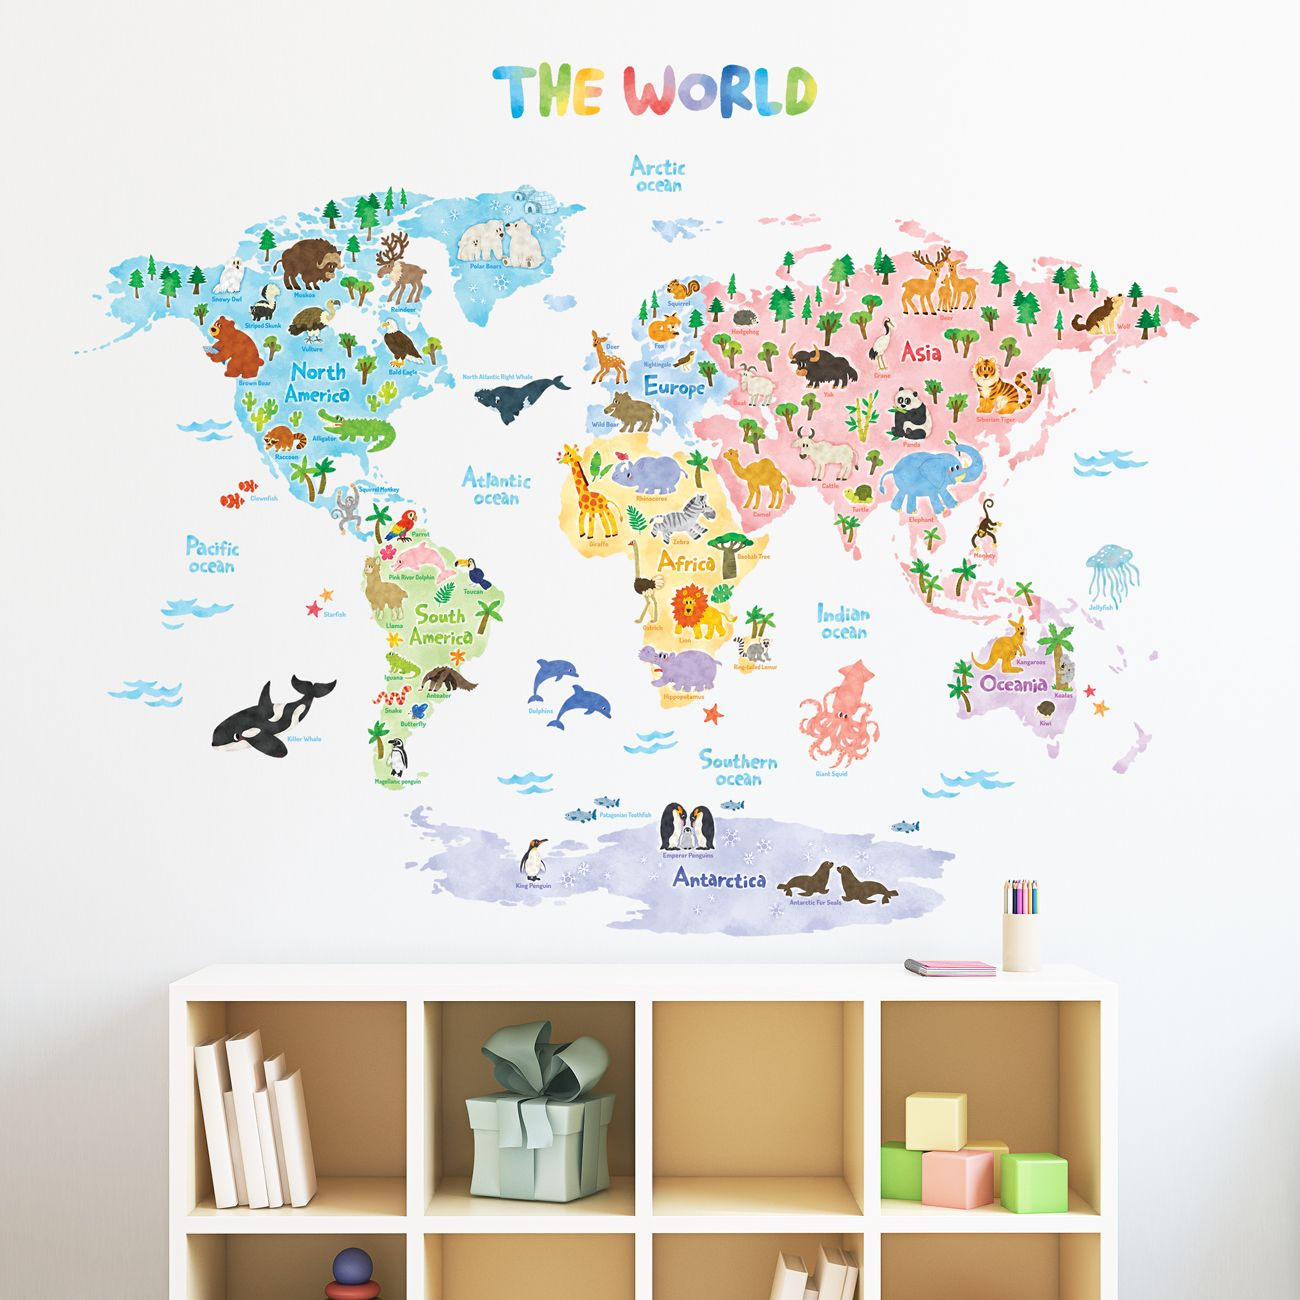 Animal world map wall sticker you can also buy this product in animal world map wall sticker you can also buy this product in amazon https gumiabroncs